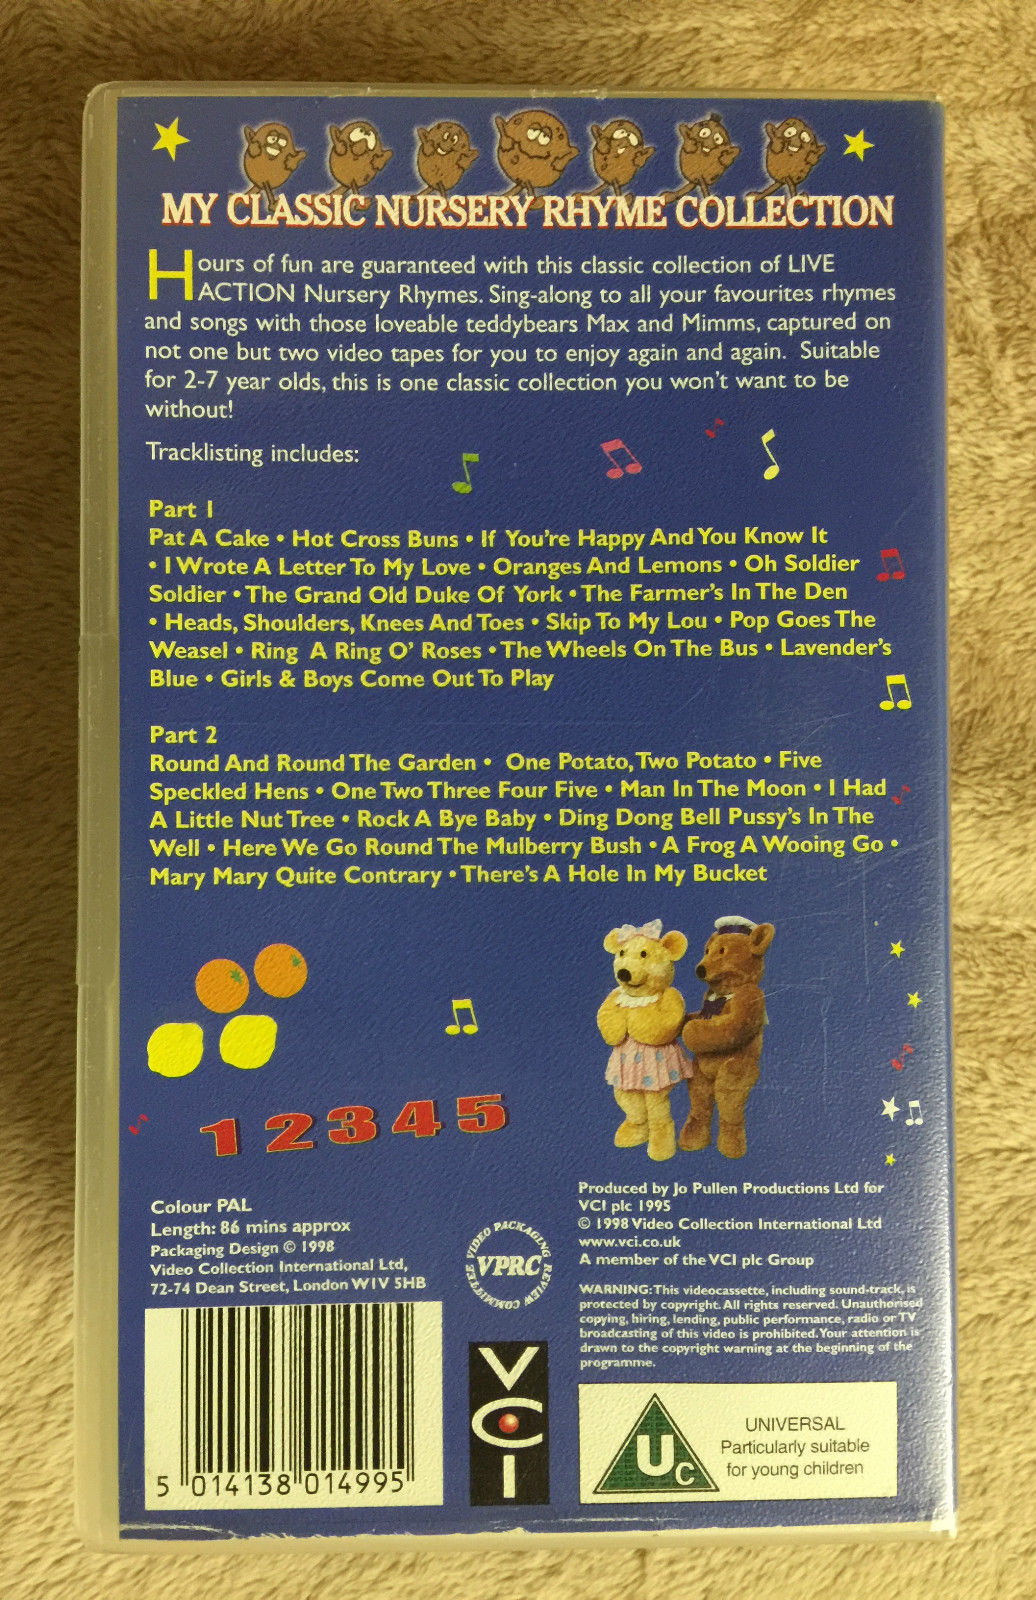 Image My Clic Nursery Rhyme Collection Double Vhs 57 1 Jpg